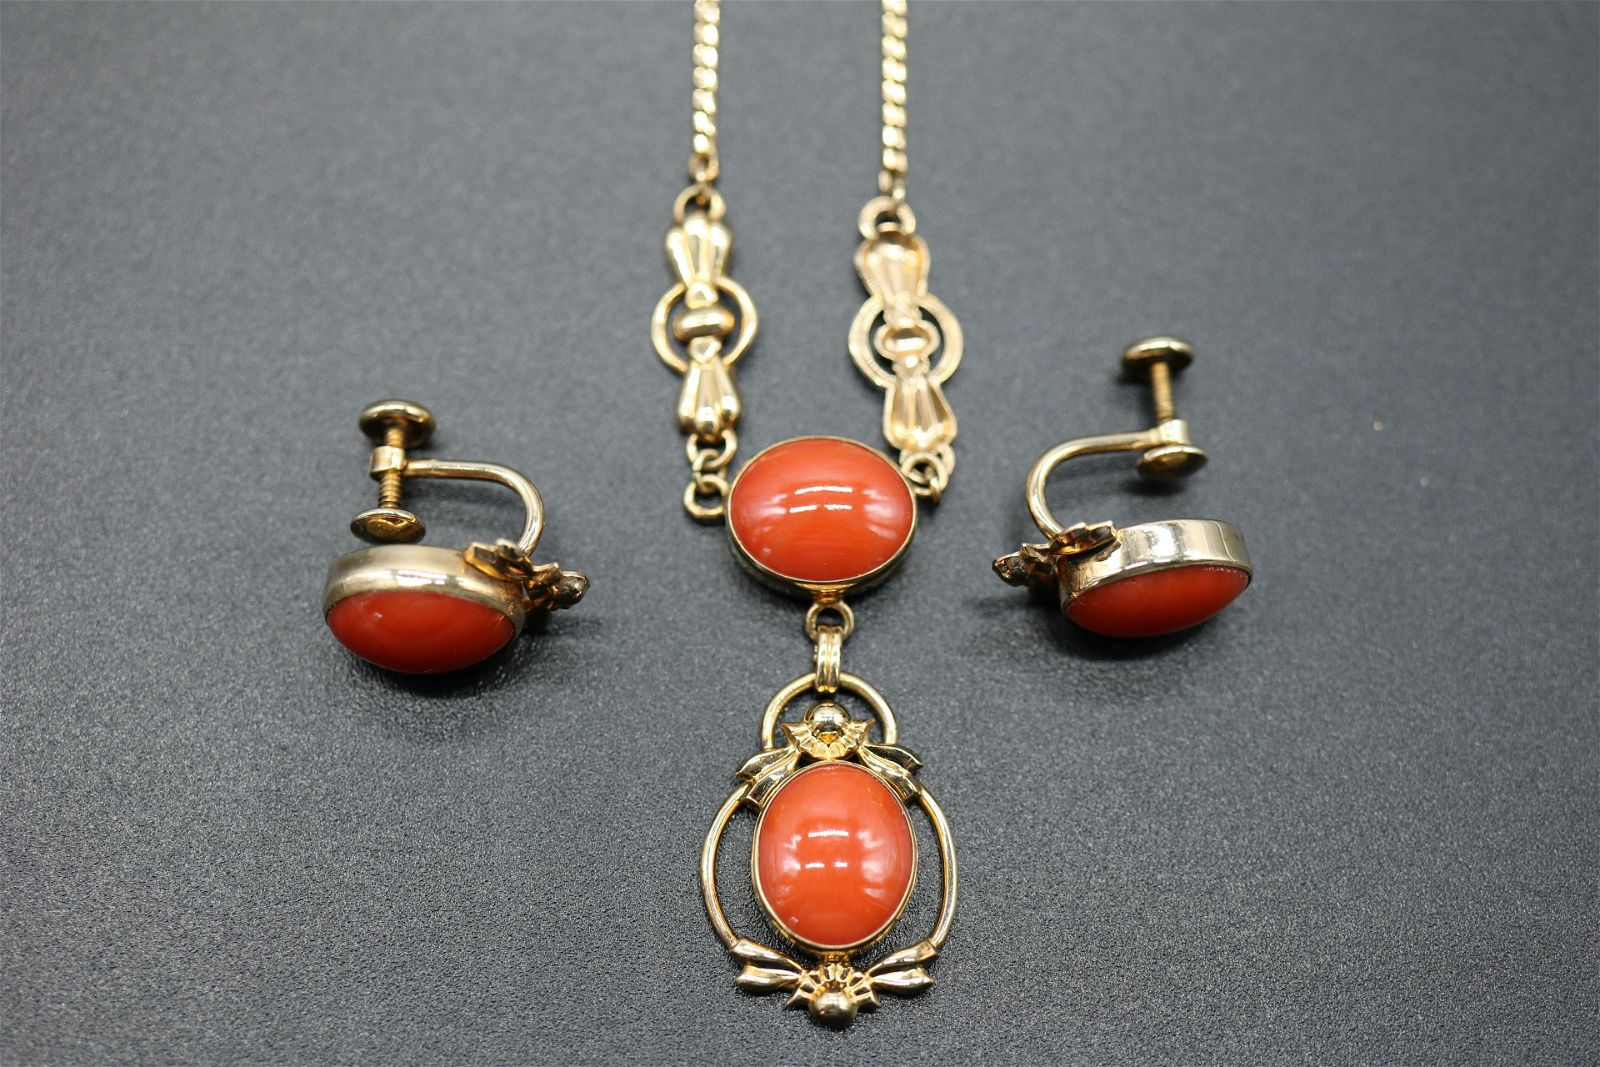 Vintage Signed Van Dell Necklace & Earrings, Gold